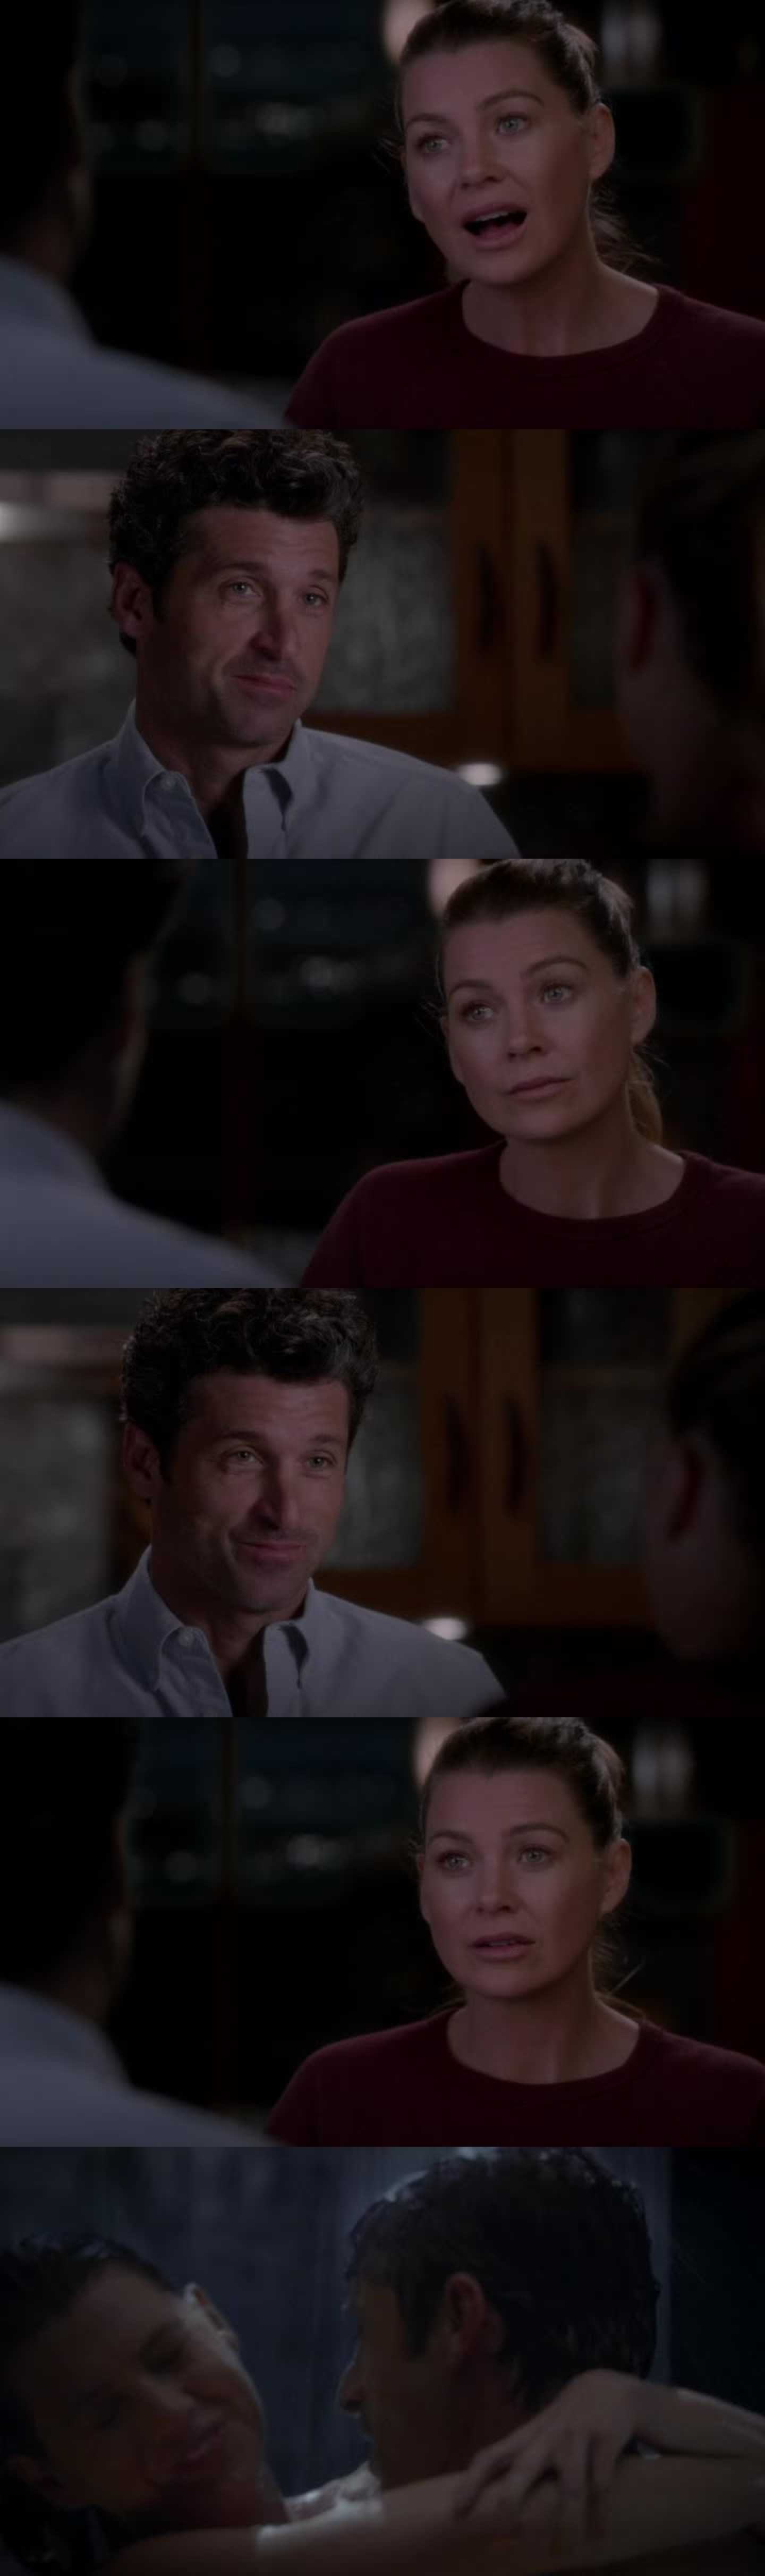 - I need a break from you, from the fighting, from the pot roast, because the table isn't set. The candles aren't lit. The guest are gonna arrive in 30 minutes. I still need to take a shower. I need a timeout. Don't look at me like that.   - I could use a shower, too.